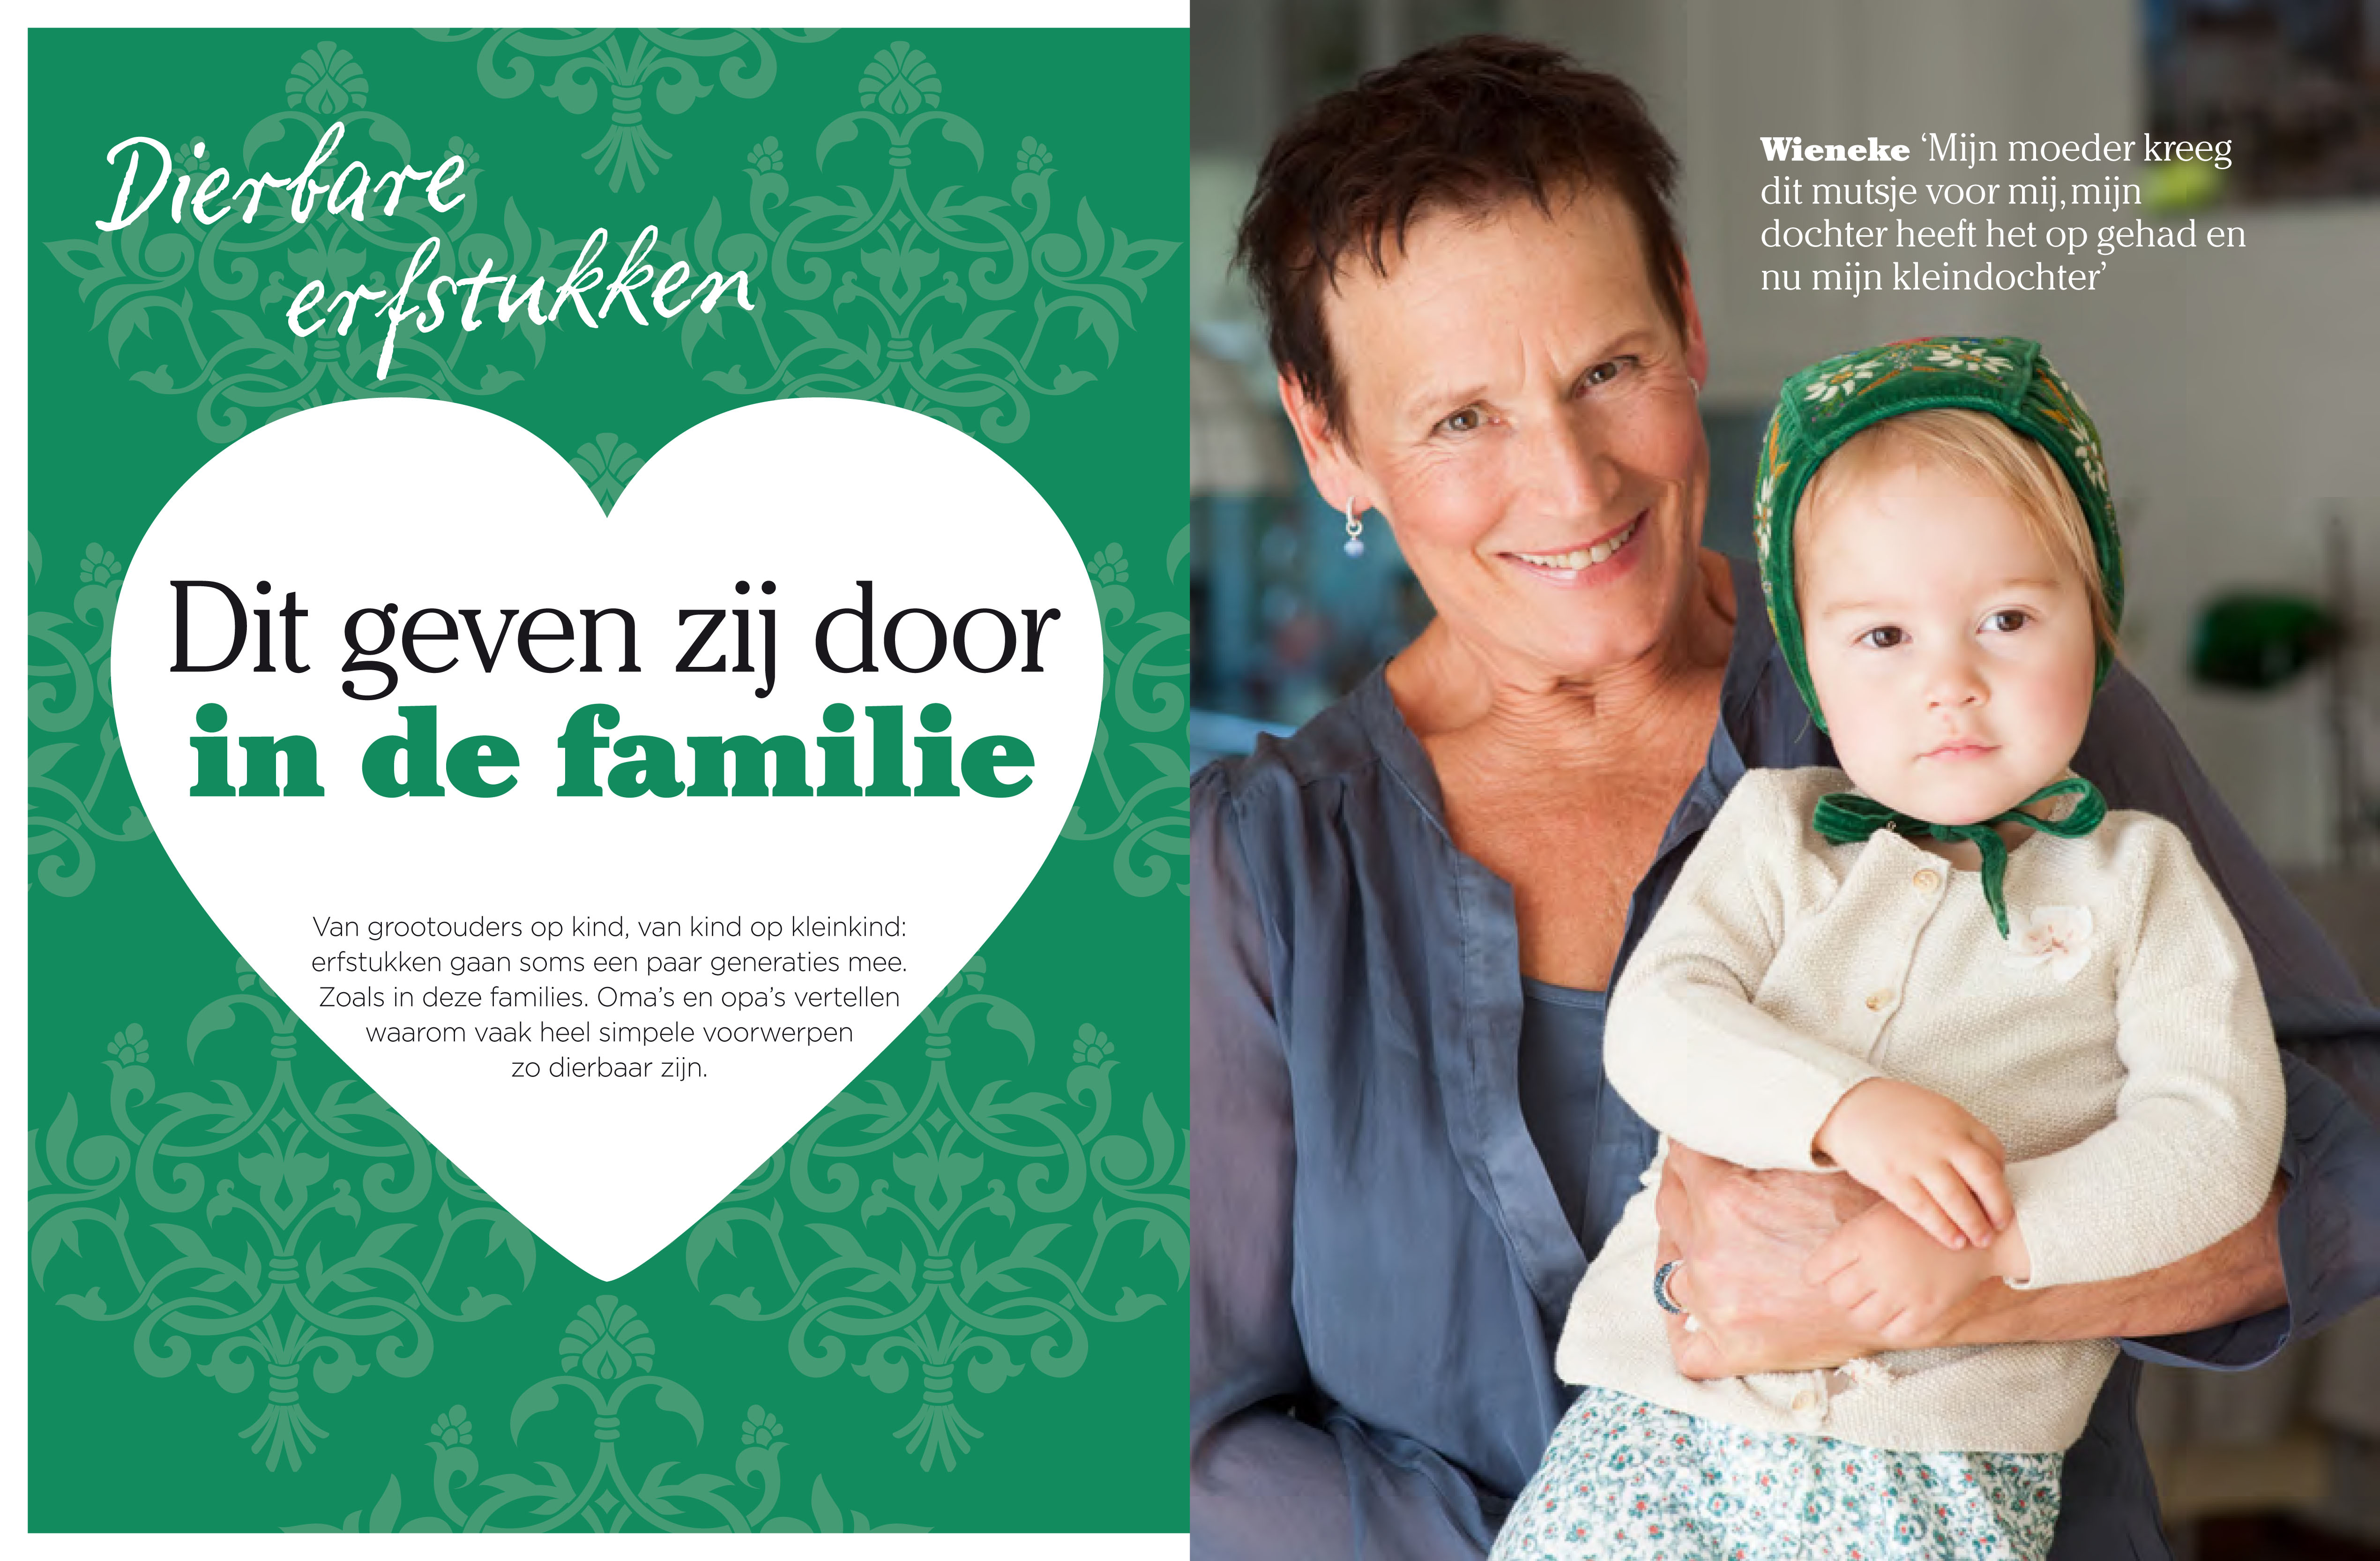 Just Published | Dierbare erfstukken | Trots Magazine